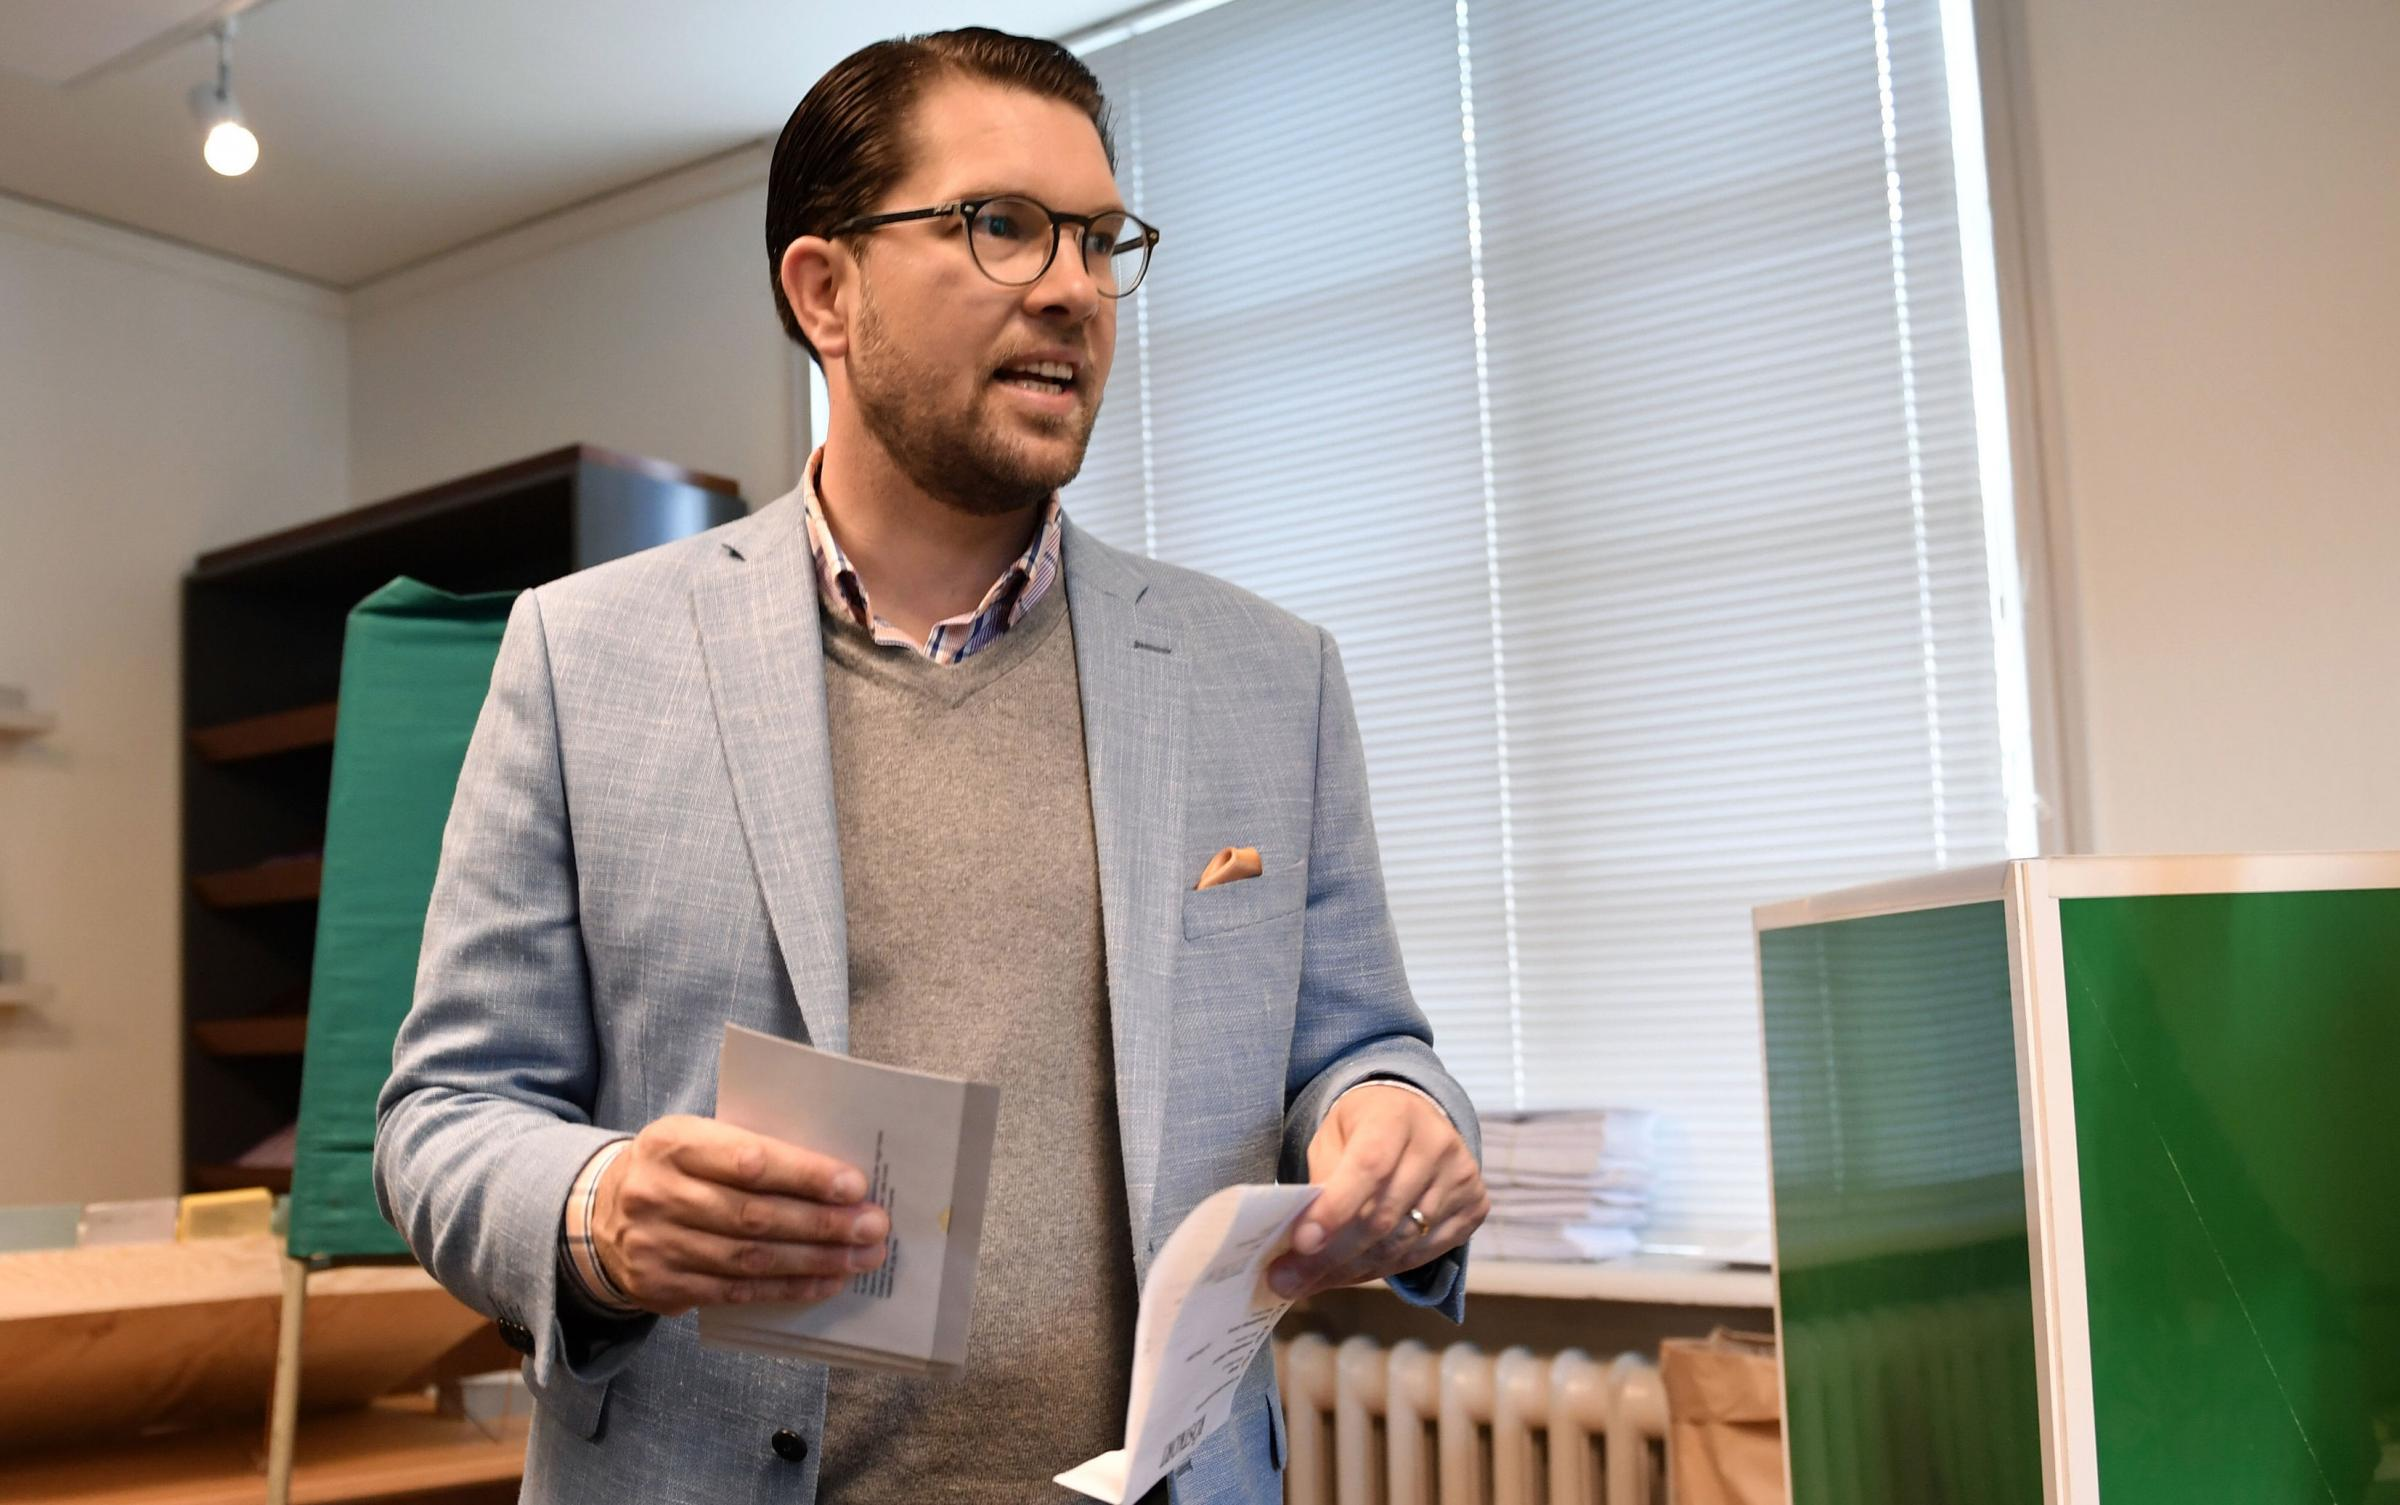 Jimmie Akesson, leader of the right-wing nationalist Sweden Democrats party